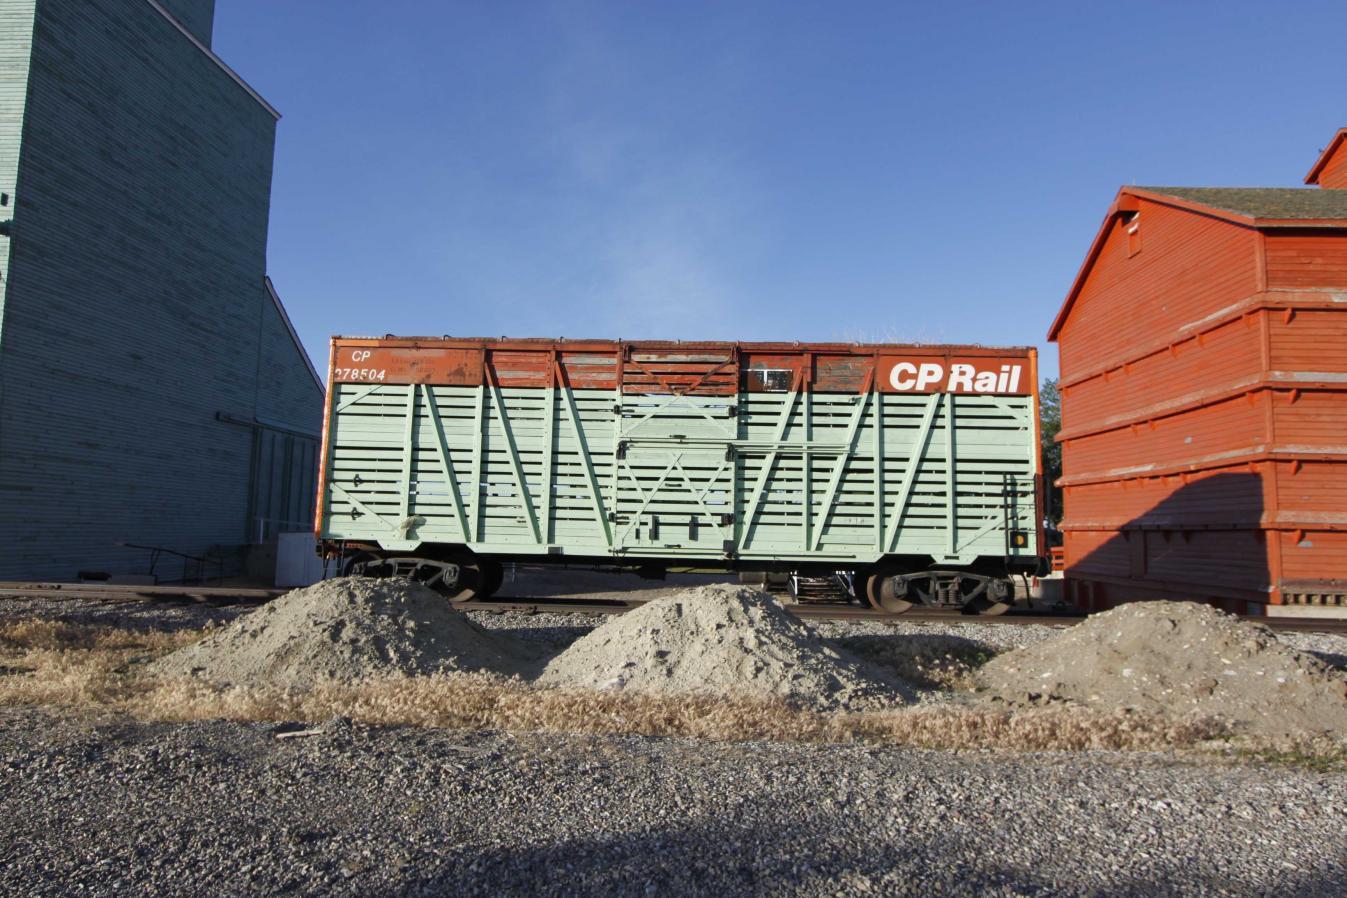 CP Rail Old Box.jpg